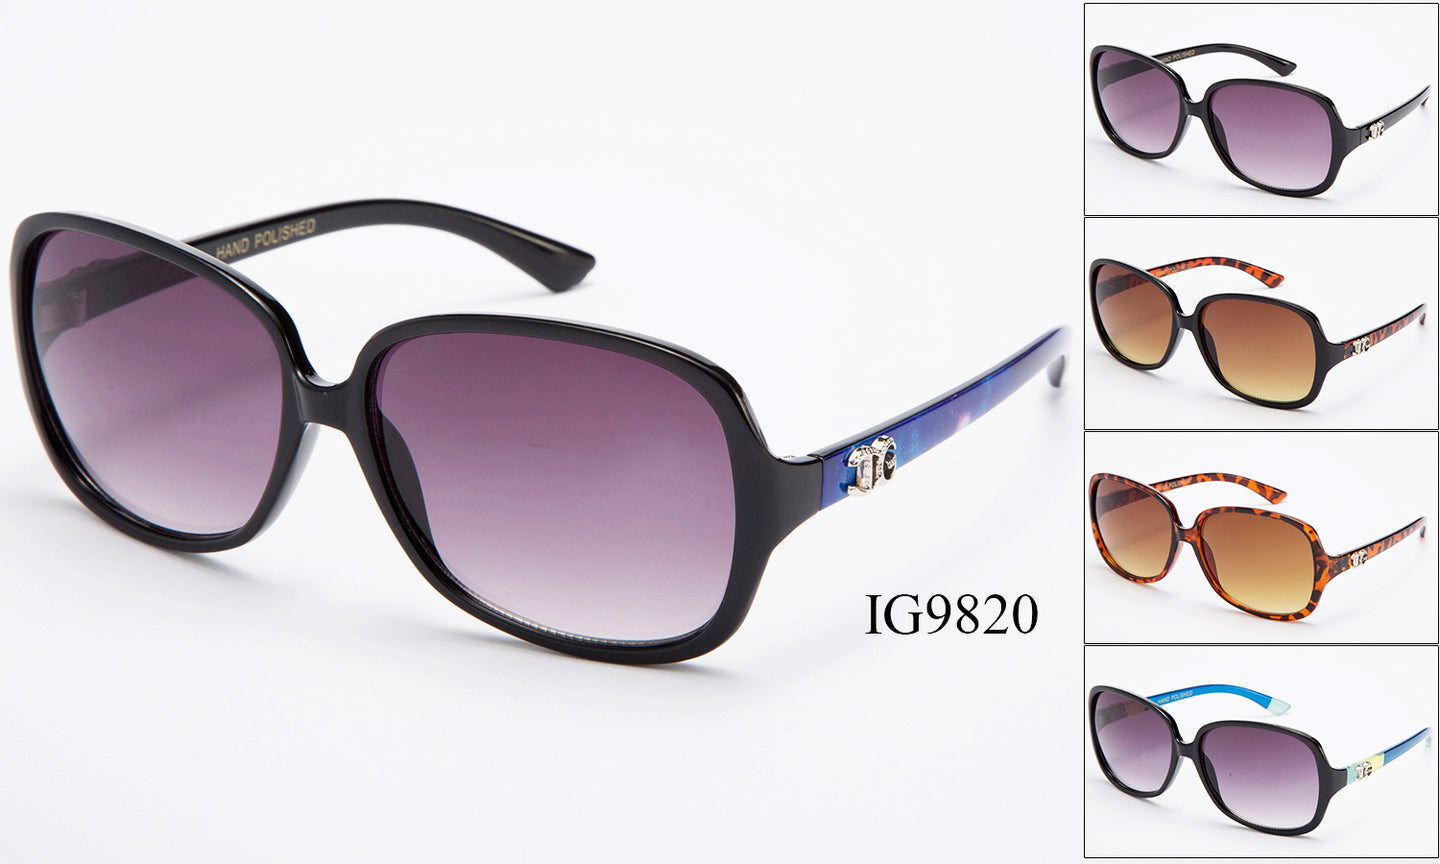 Womens Wholesale Fashion Squared Lenses Oversized Sunglasses 1 Dozen IG9820 - BuyWholesaleSunglasses.com